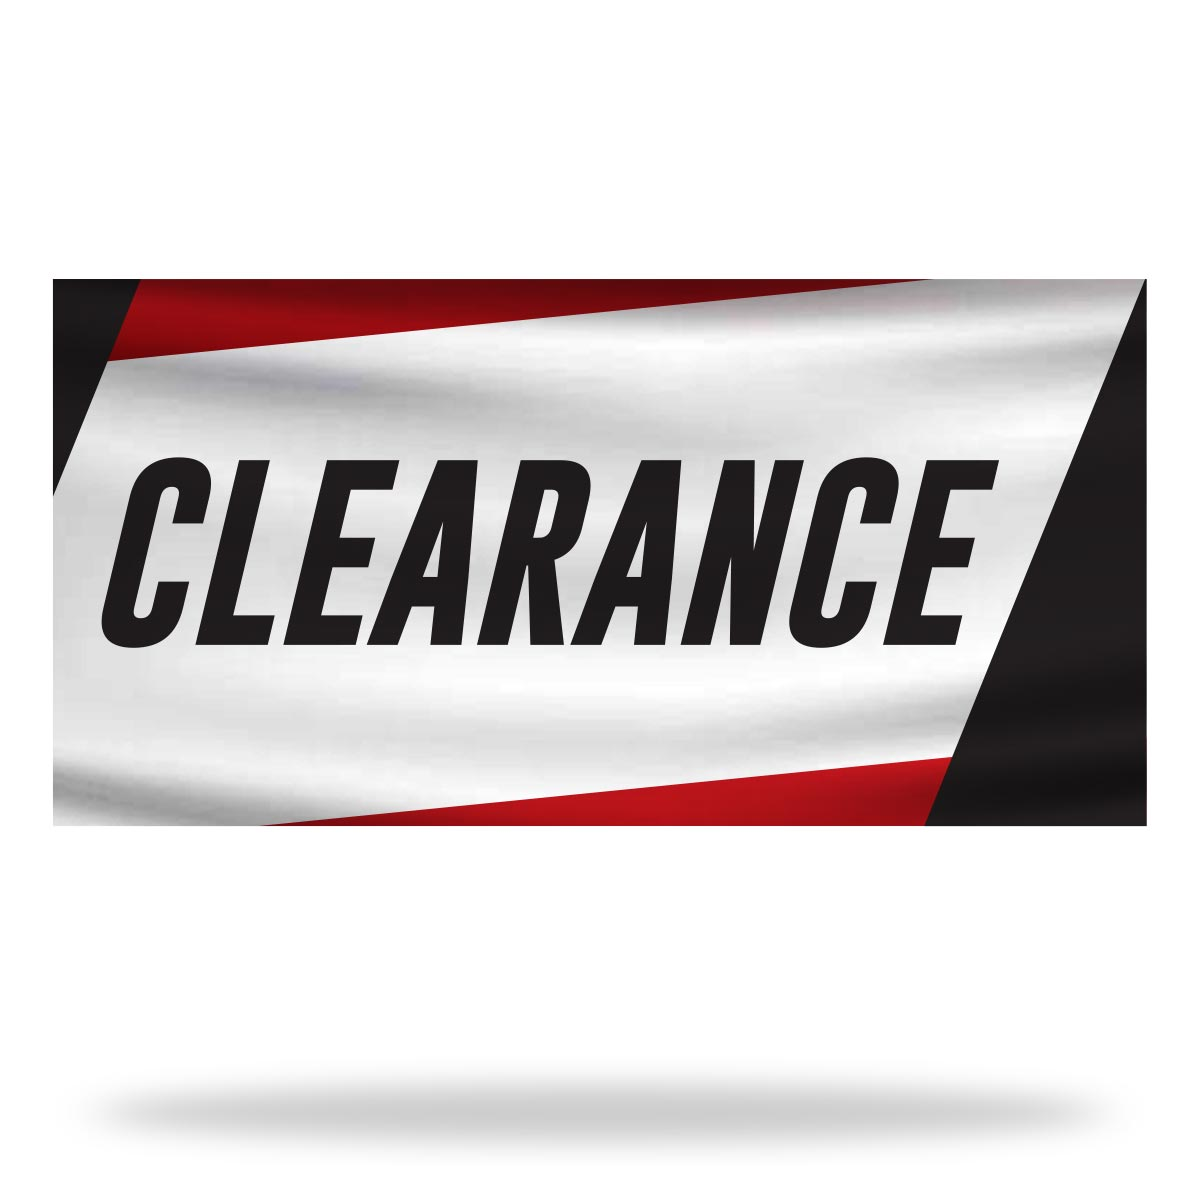 Clearance Flags & Banners Design 01